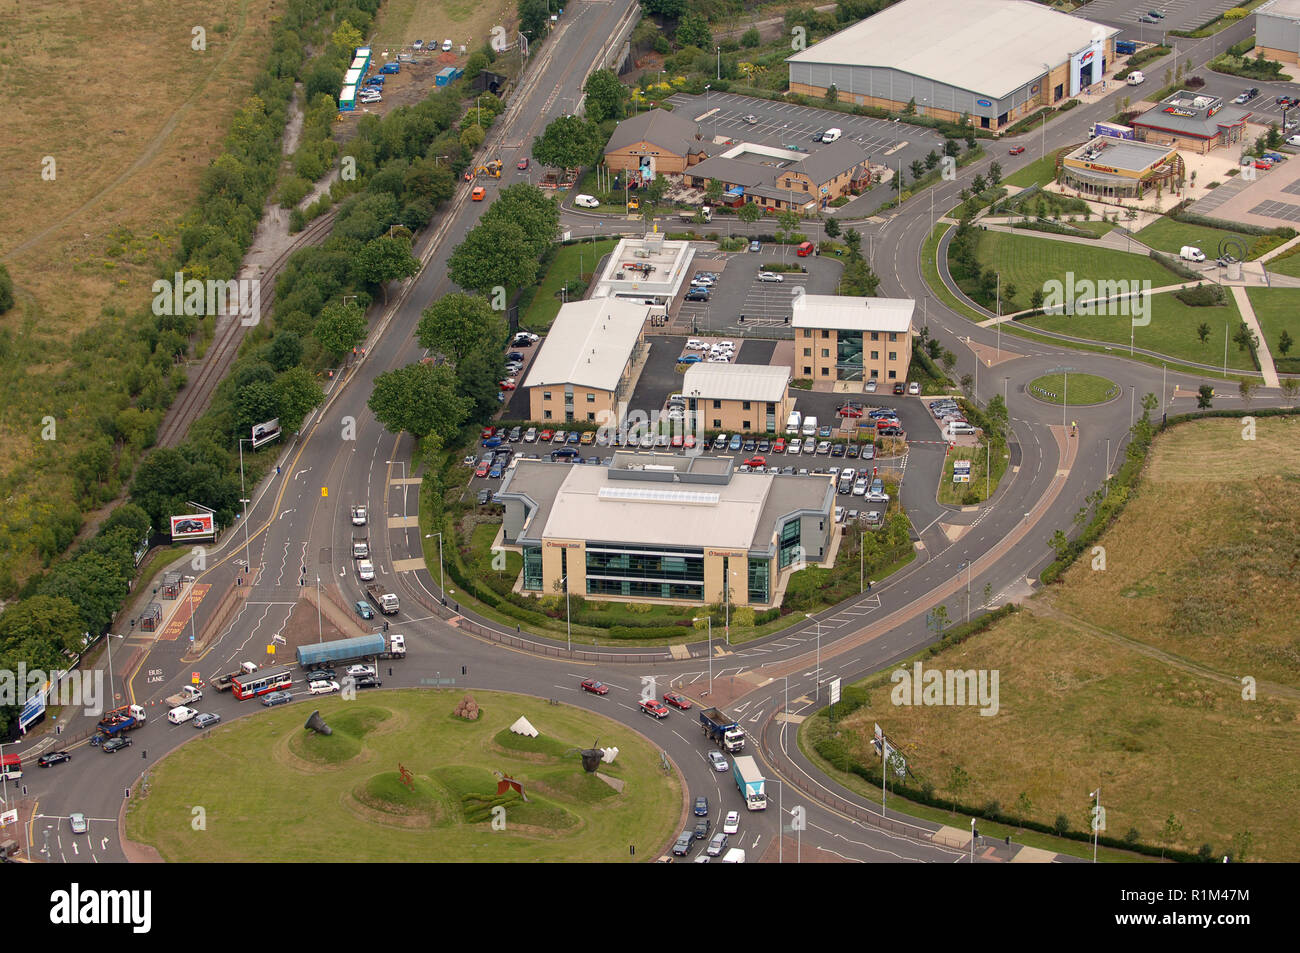 Aerial view of Rentokil Initial plc offices in Dudley, West Midlands, Uk - Stock Image